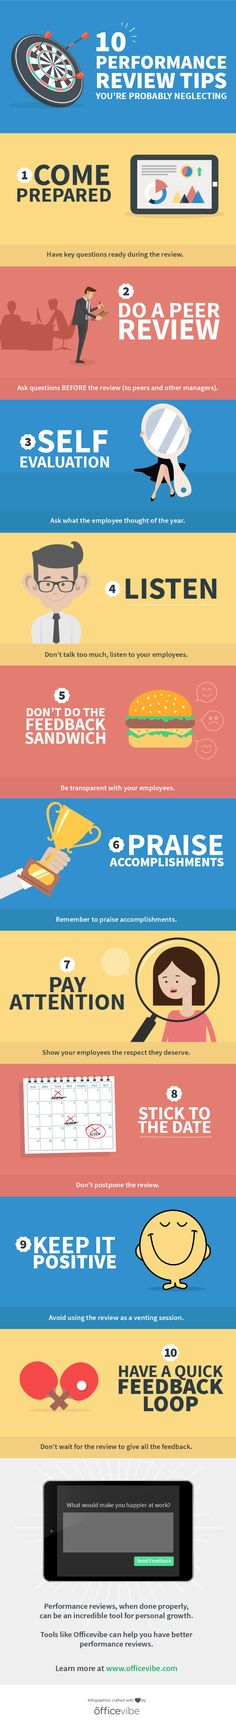 Performancereview Tips YouRe Probably Neglecting Infographic